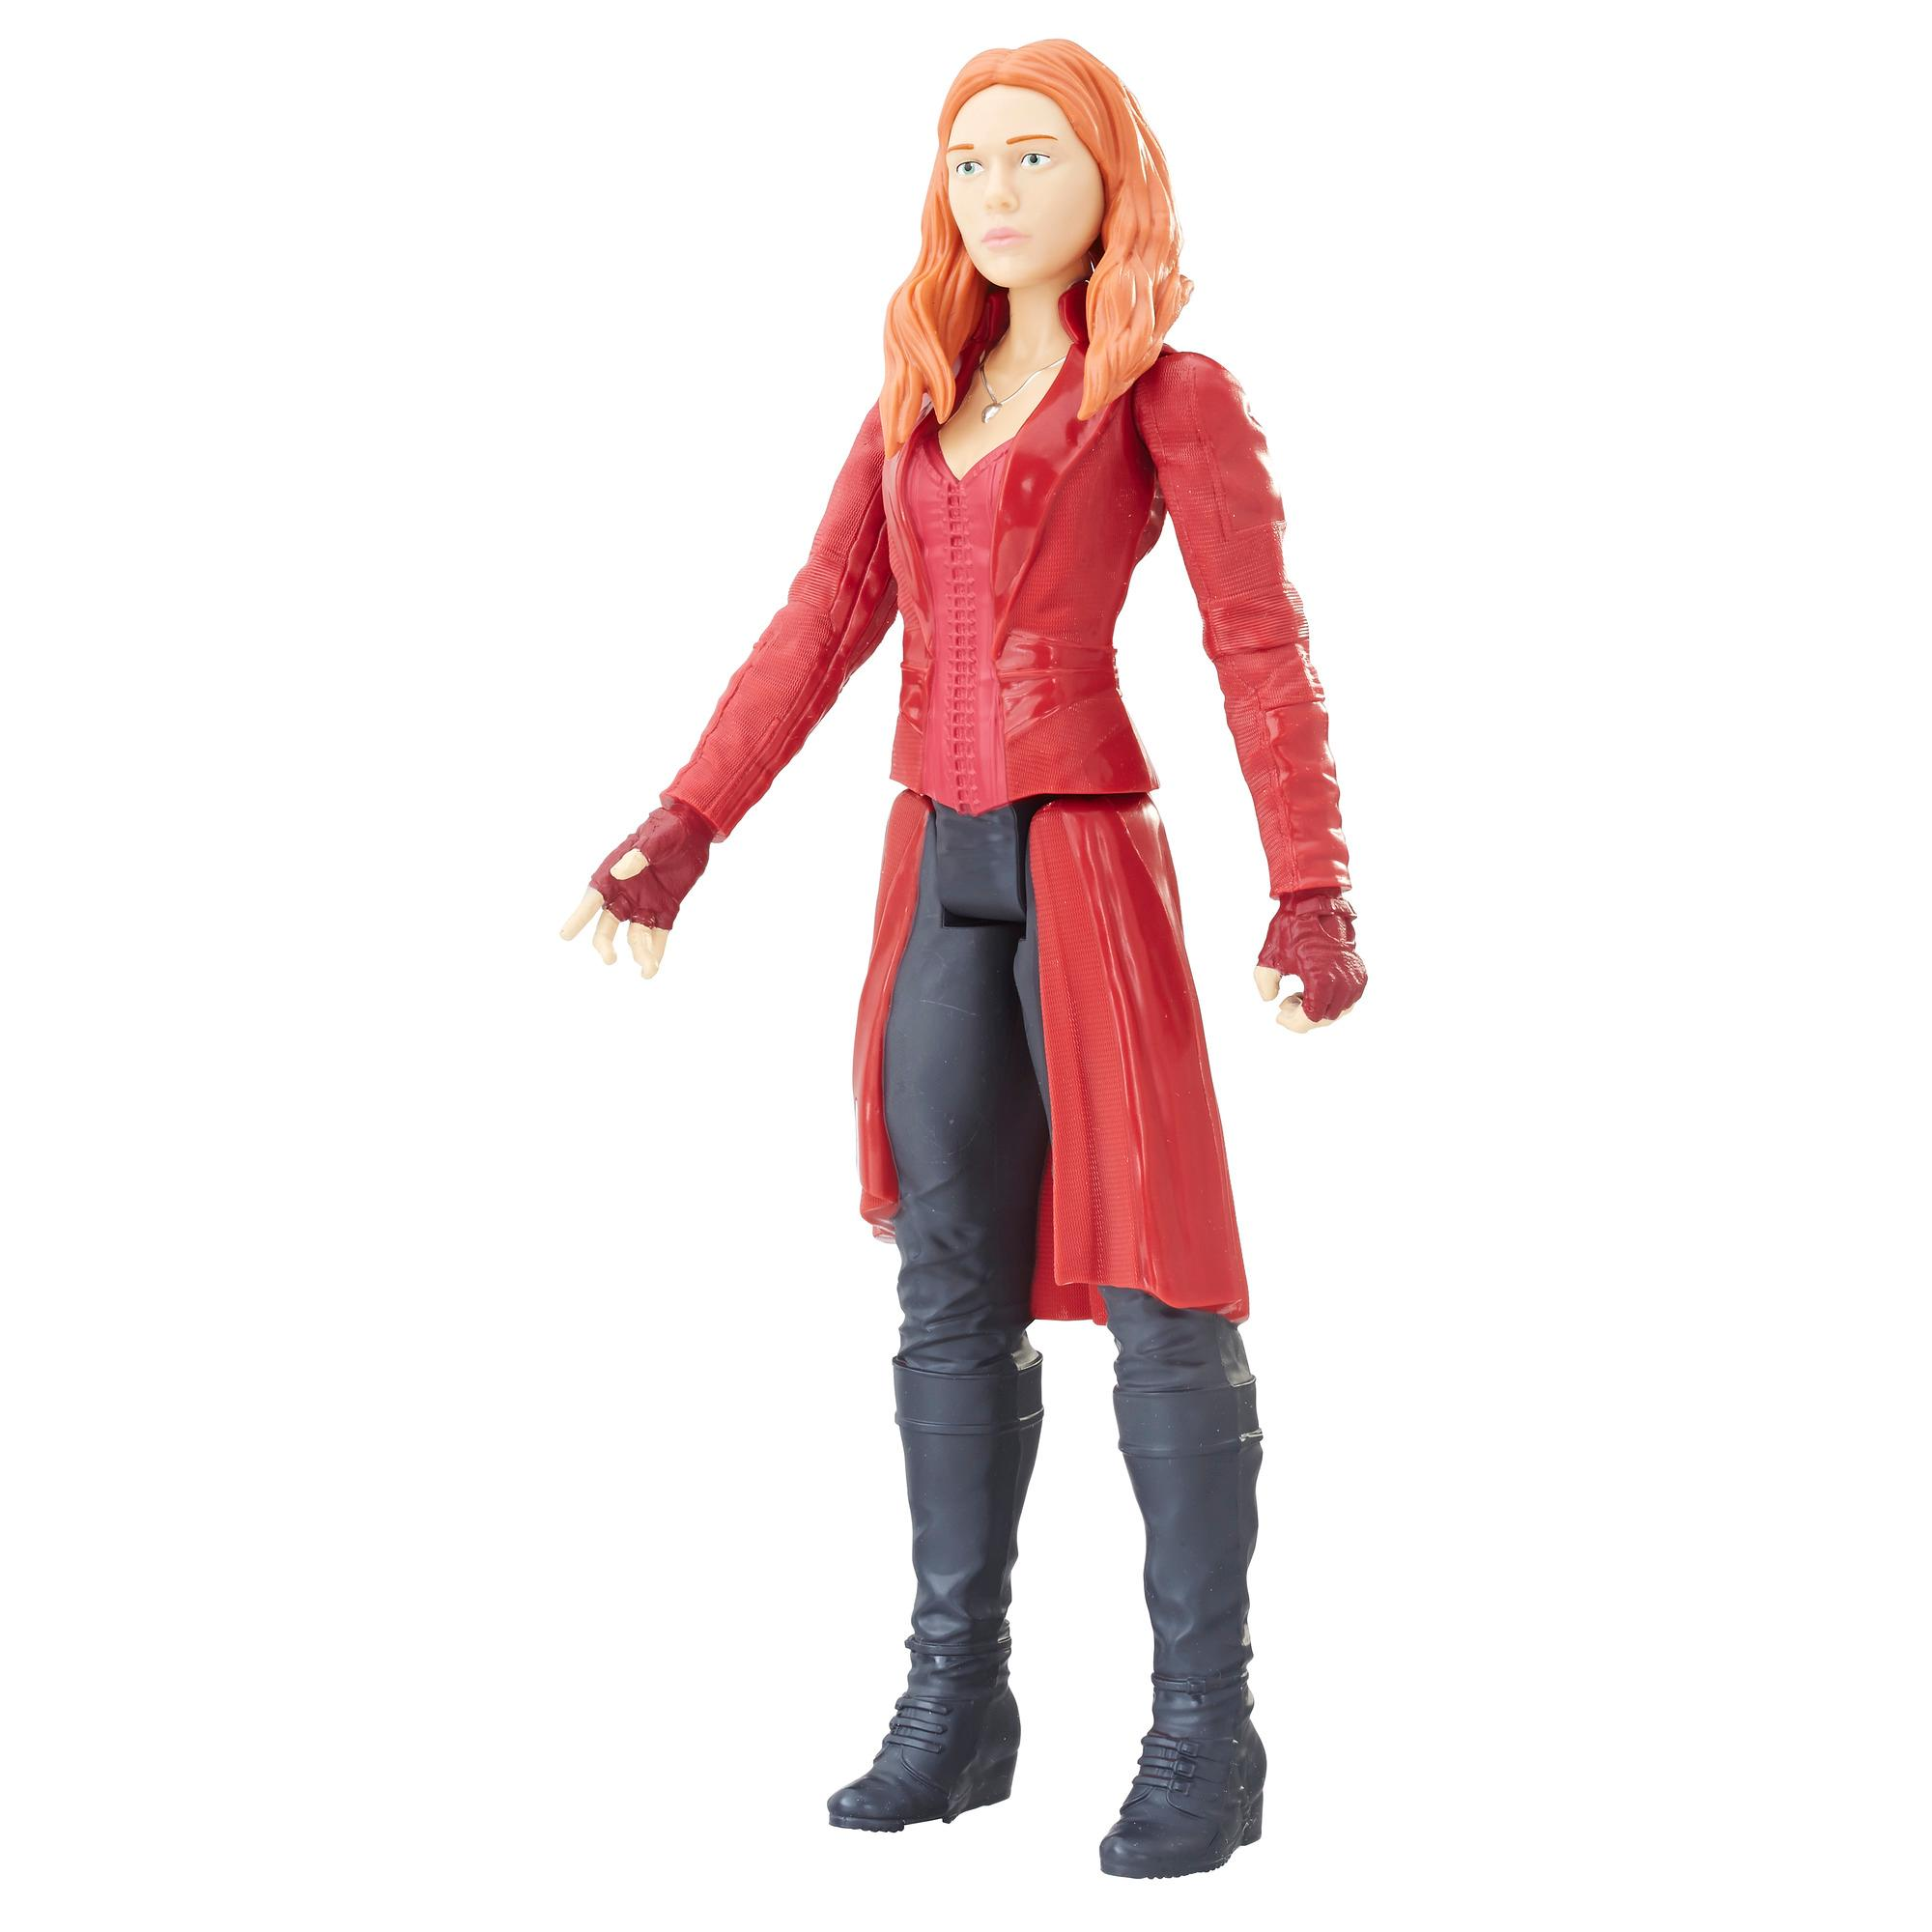 Marvel Infinity War Titan Hero Series - Scarlet Witch con puerto para Titan Hero Power FX